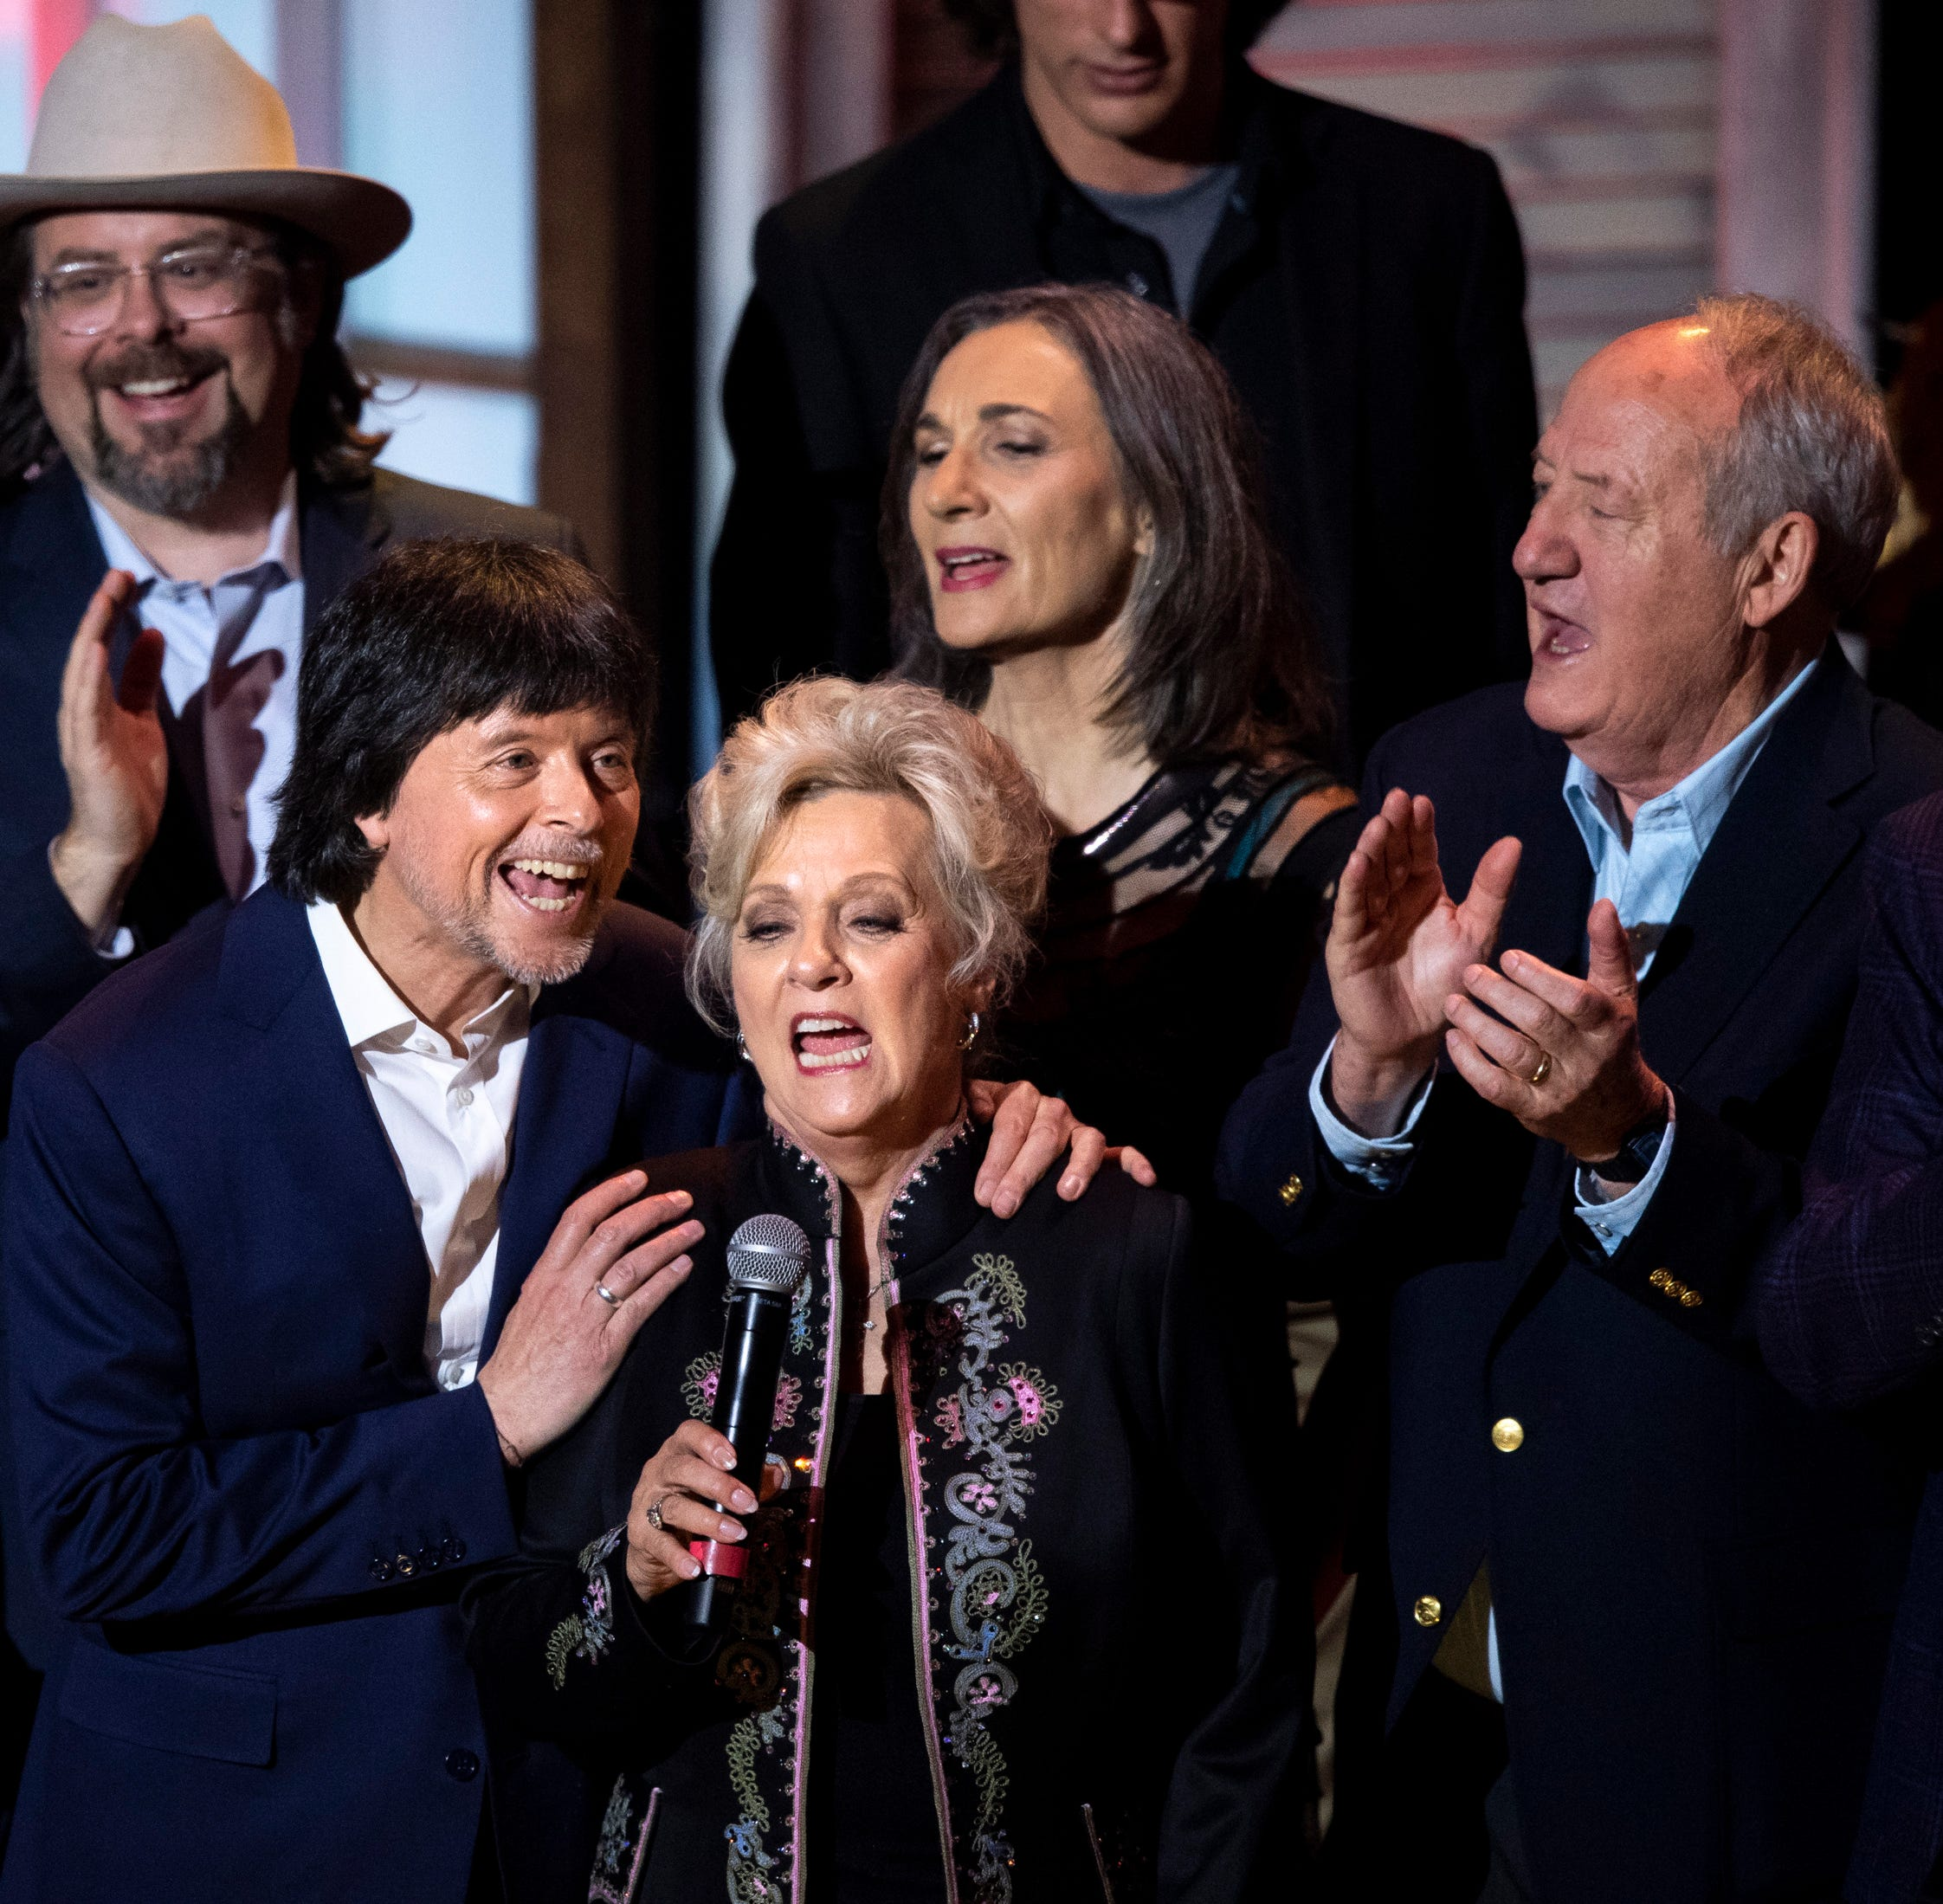 Ken Burns celebrates 'Country Music' at Ryman with all-star concert